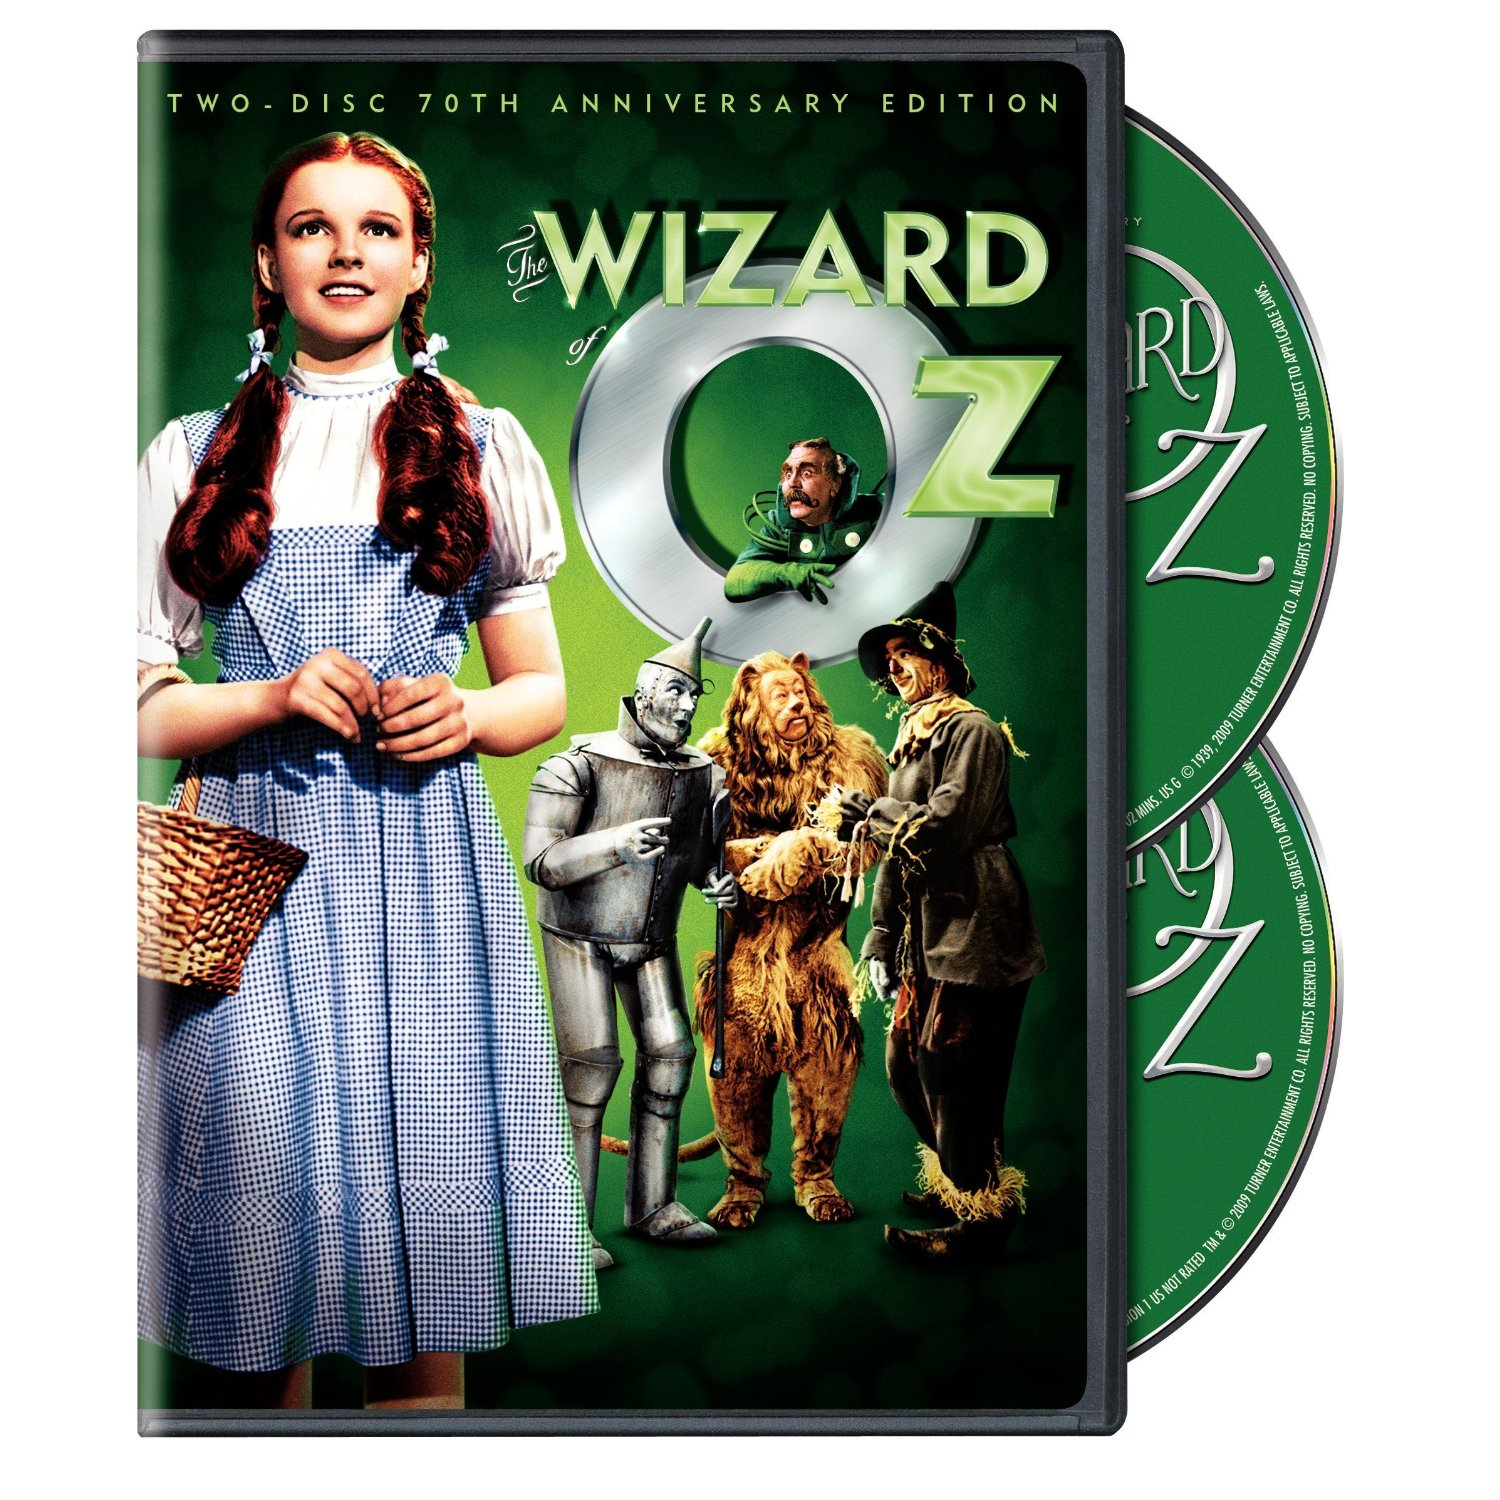 The Wizard of Oz – 2 Disc 70th Anniversary Edition – Only $5.49